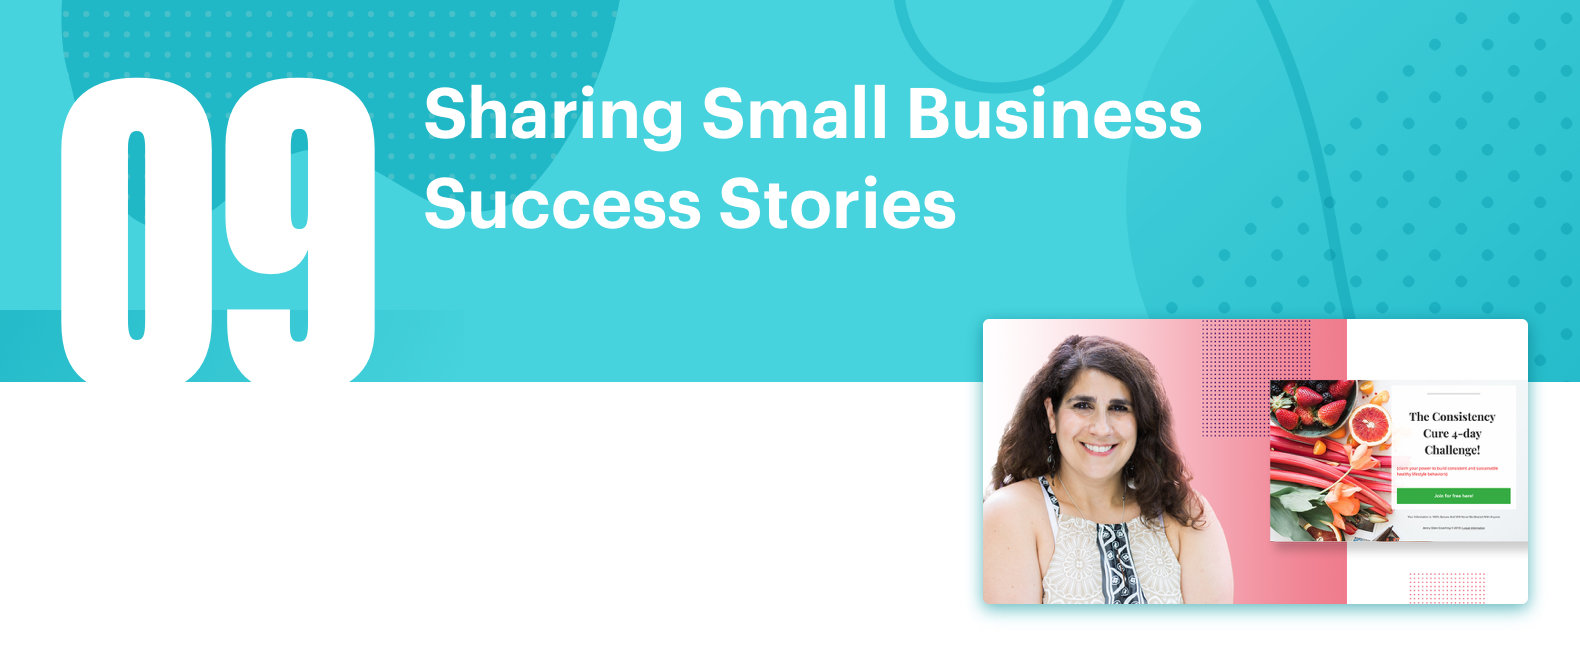 Leadpages Shares Small Business Success Stories